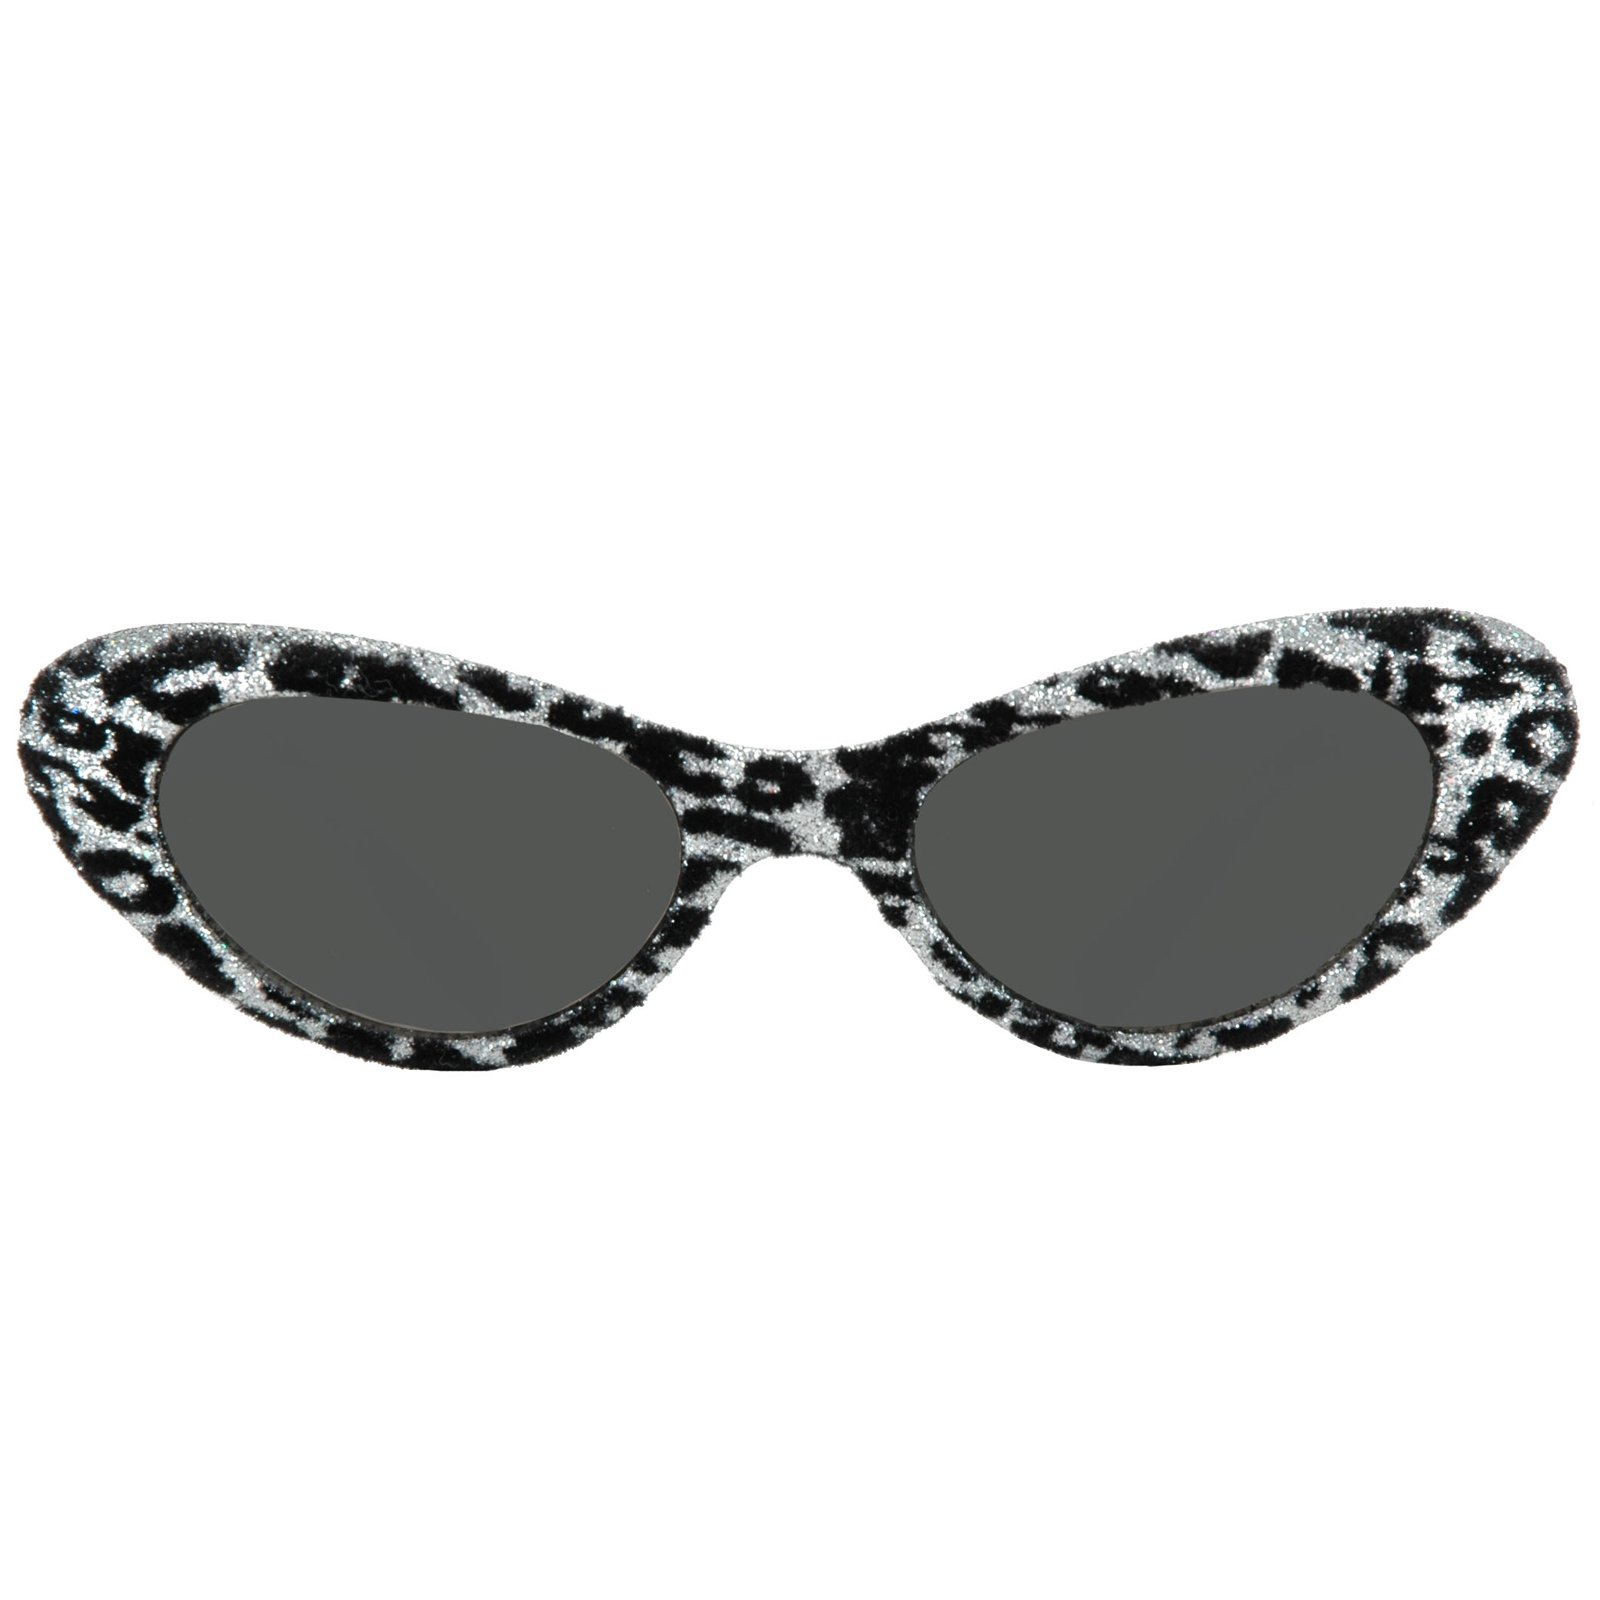 1950's Cat Eye Glasses - Silver & Black